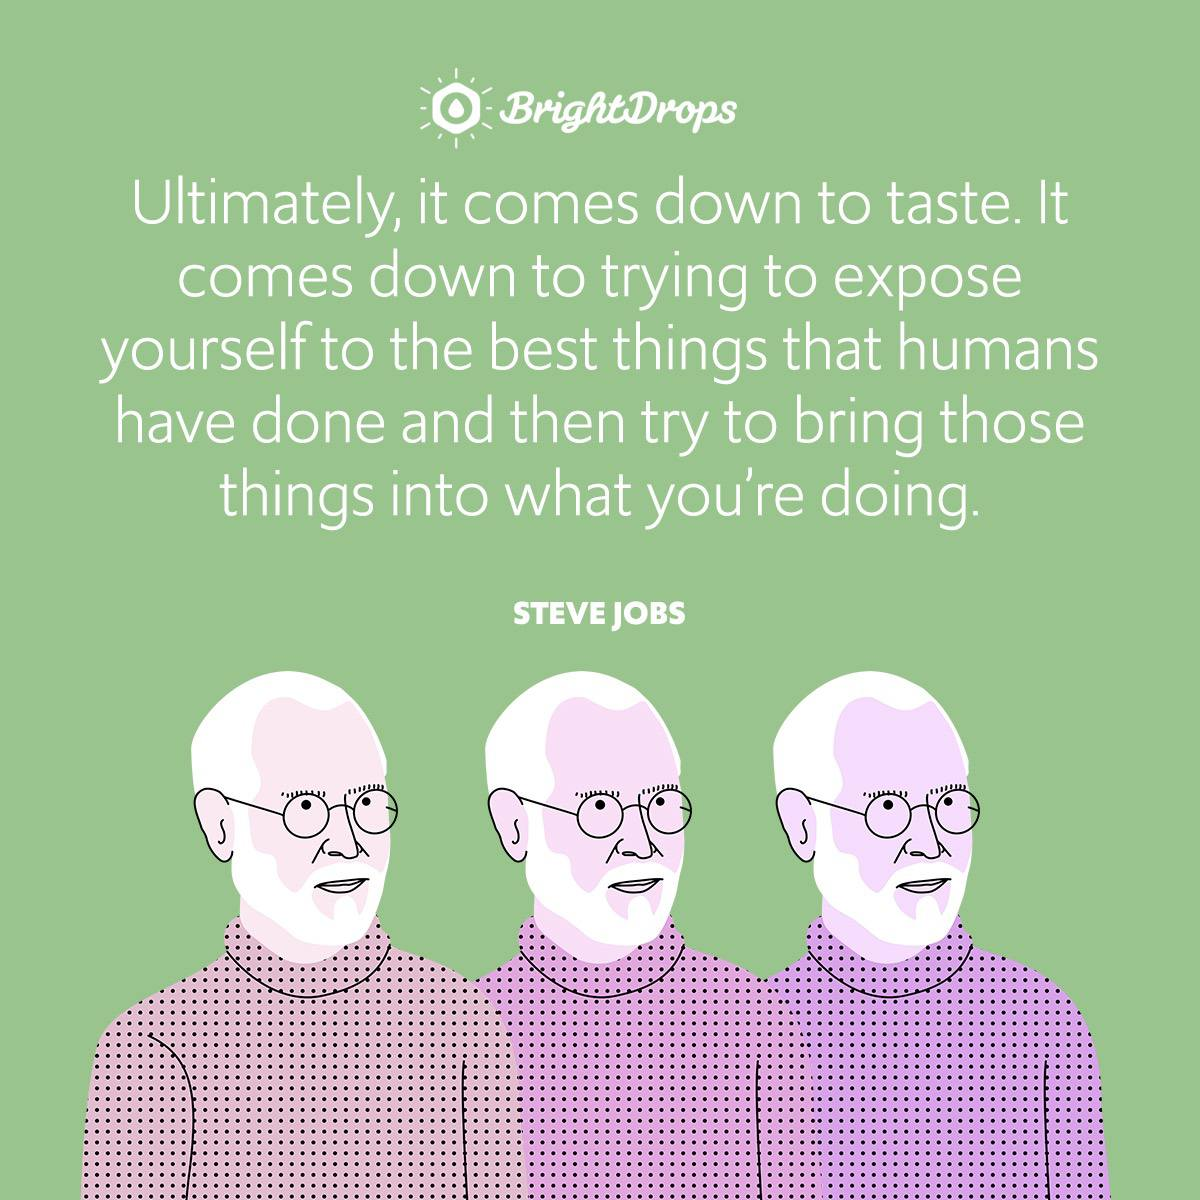 Ultimately, it comes down to taste. It comes down to trying to expose yourself to the best things that humans have done and then try to bring those things into what you're doing.